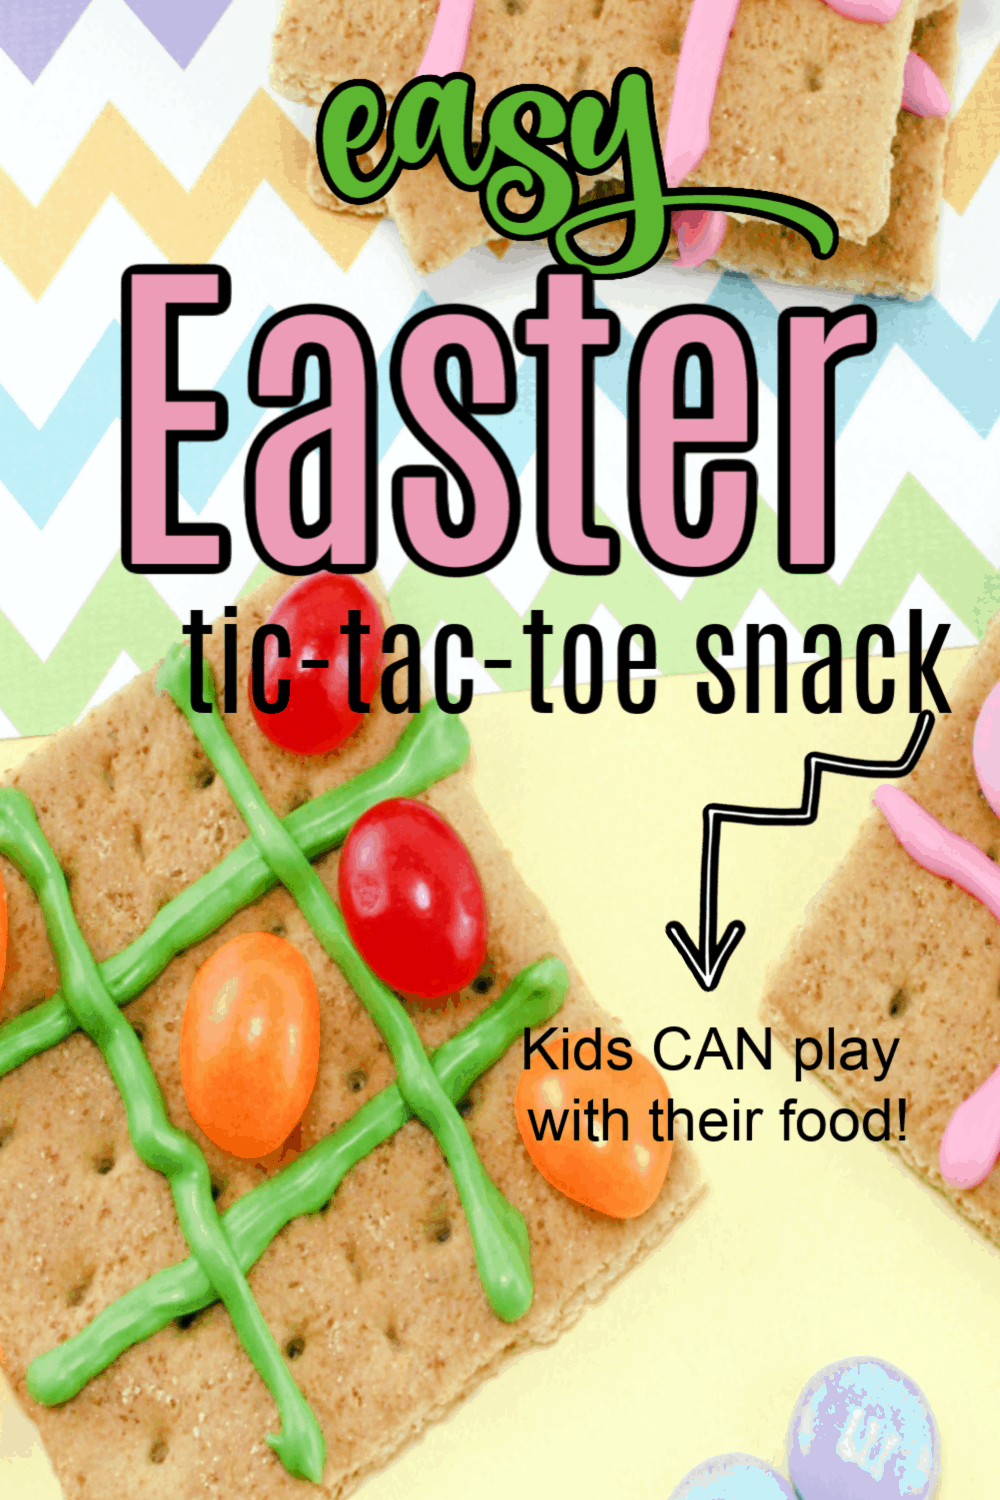 You will be the coolest mom in your playgroup when you bring this fun graham cracker tic tac toe Easter snack to your next playdate!